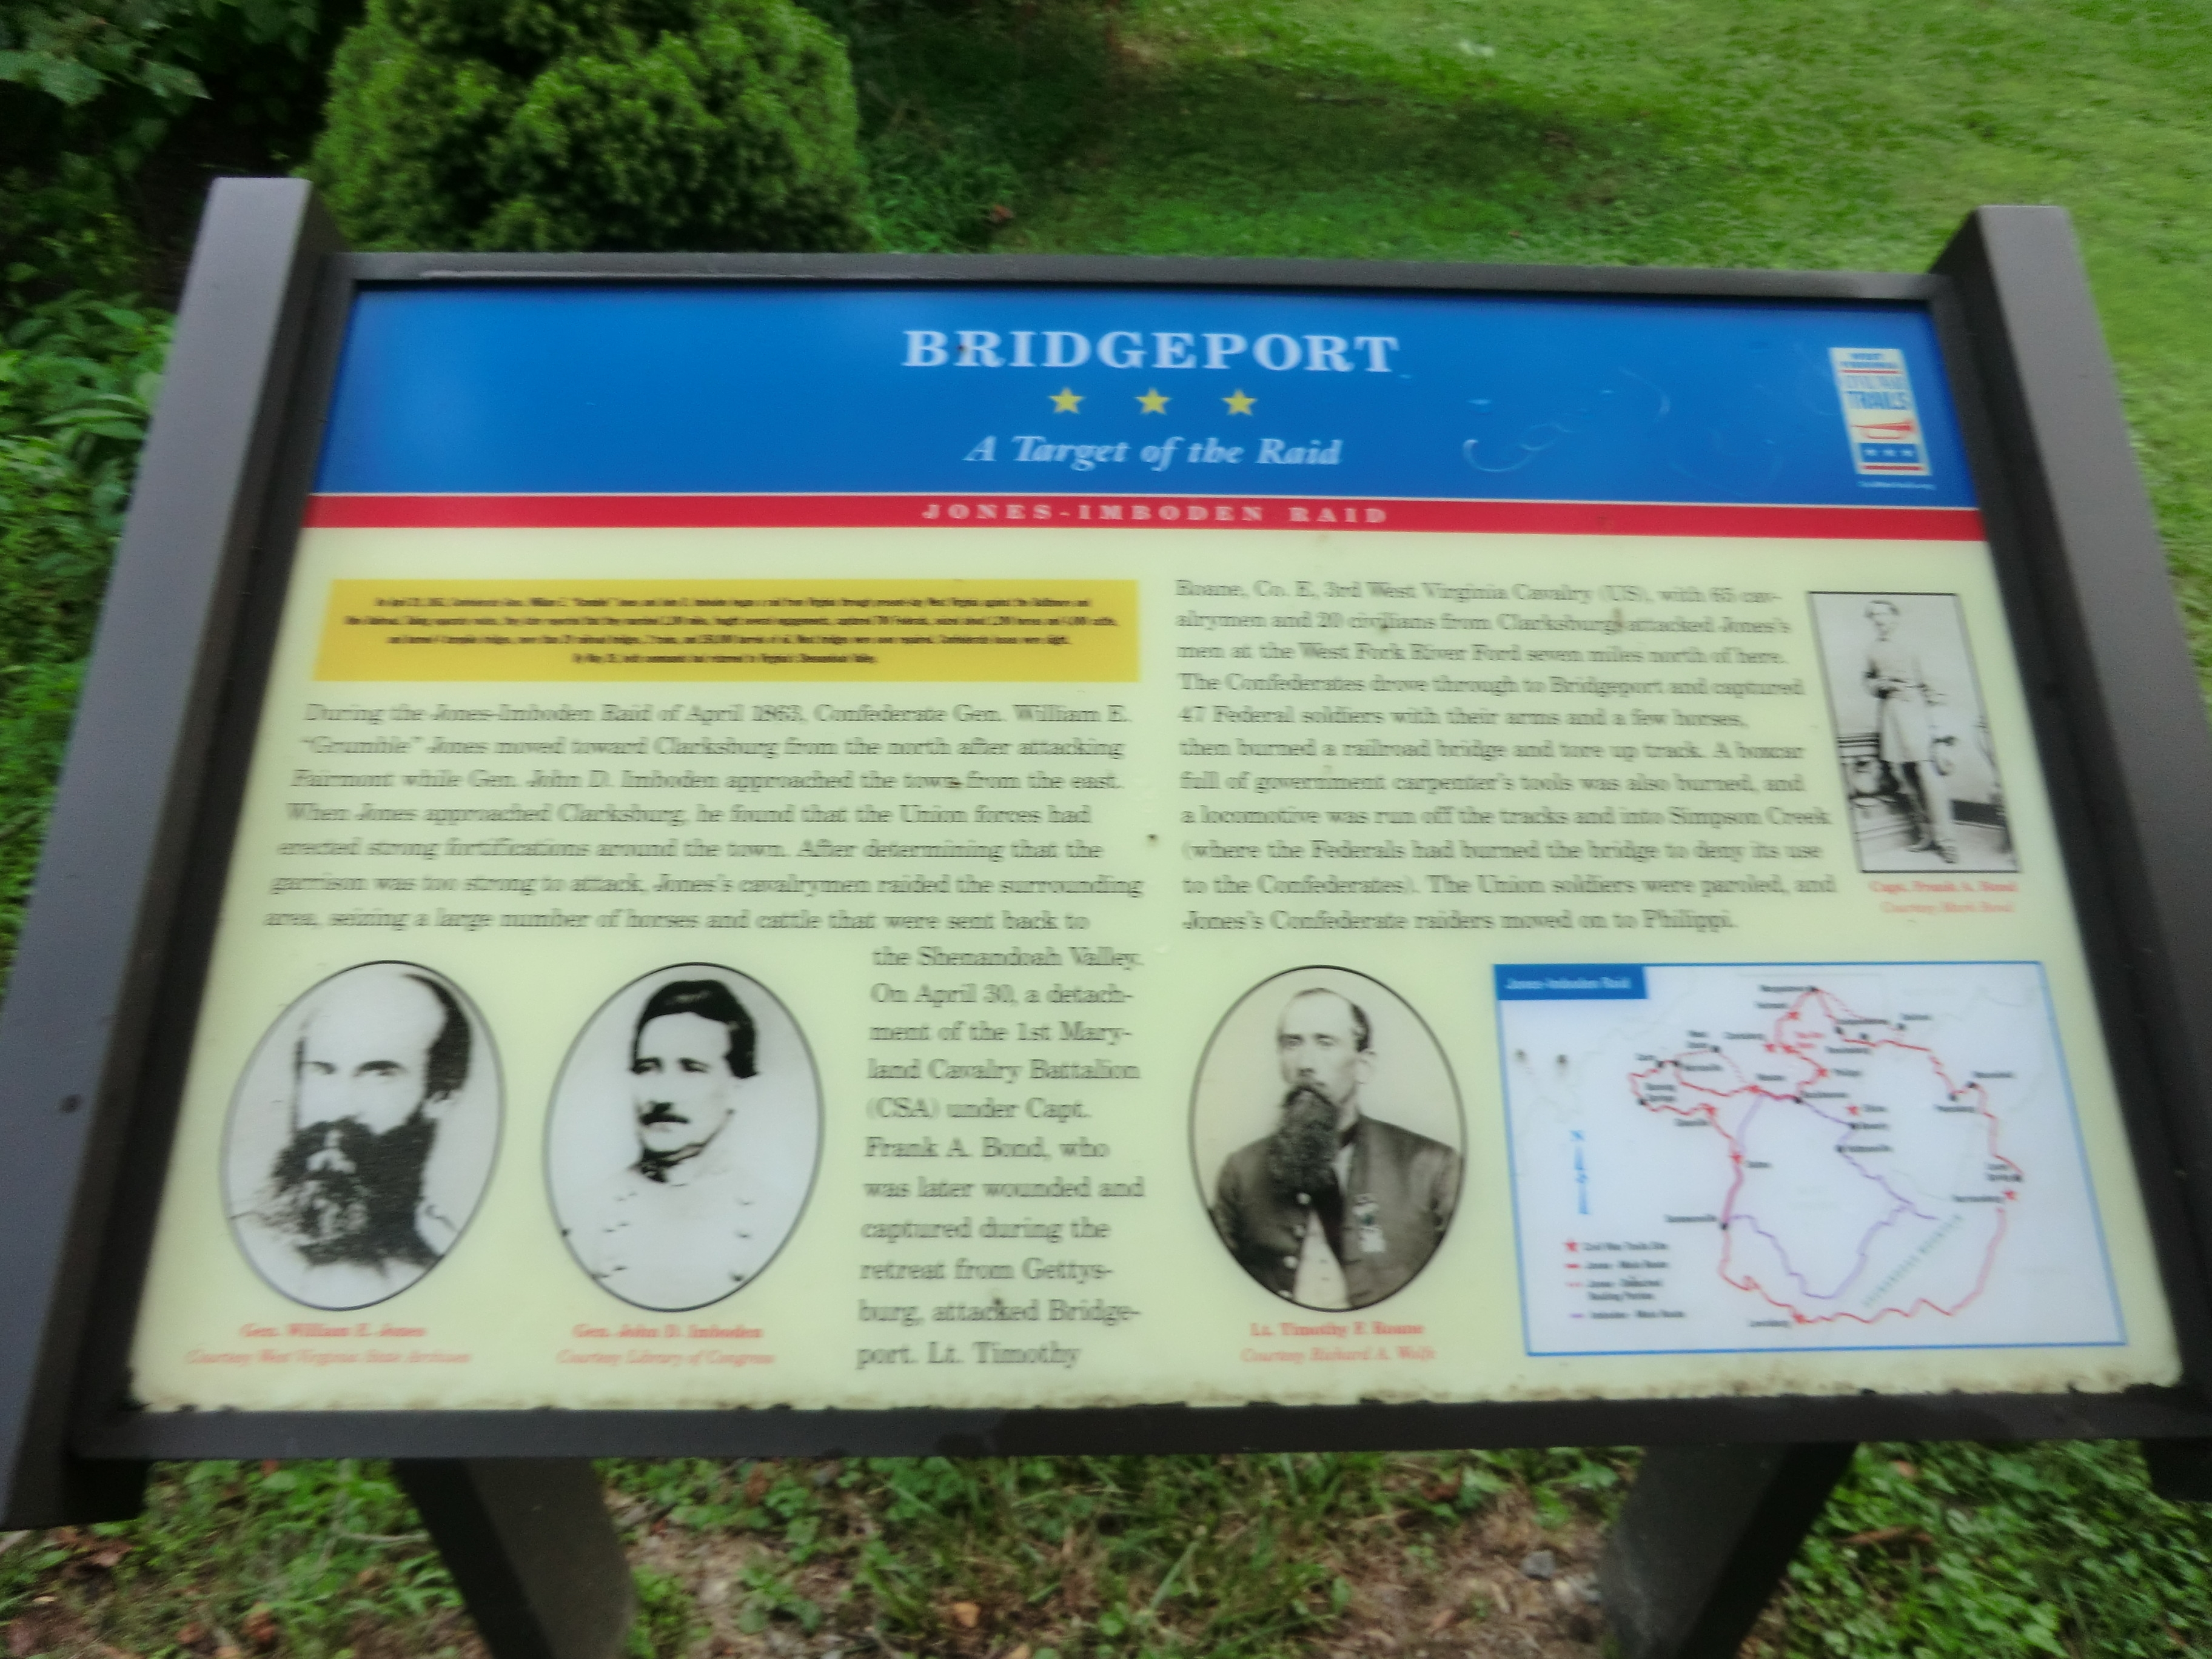 Historical marker in Bridgeport regarding the Jones-Imboden Raid.